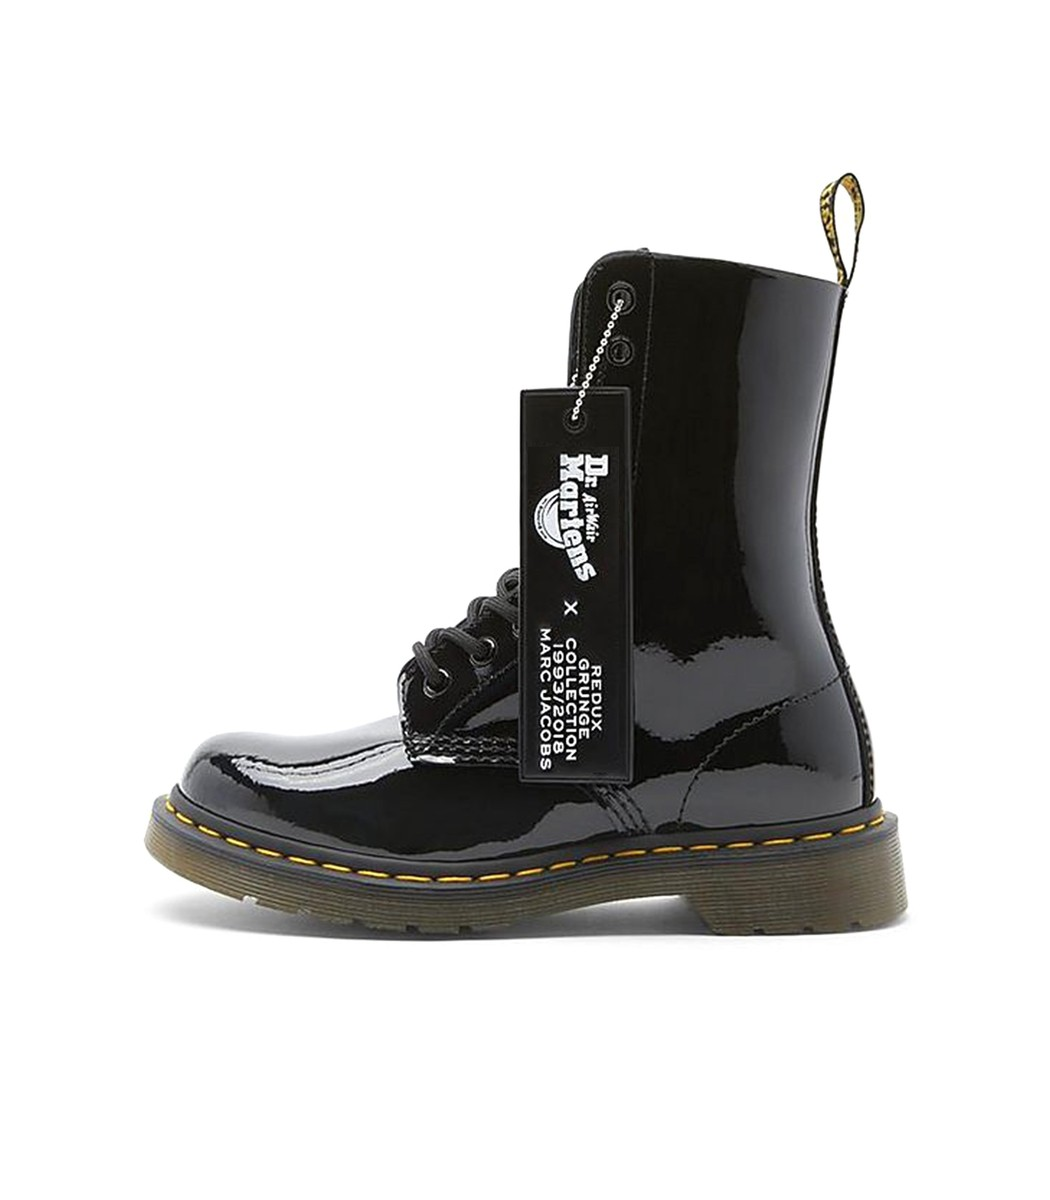 Marc Jacobs Boots Dr Marten x Marc Jacobs Boot in Black